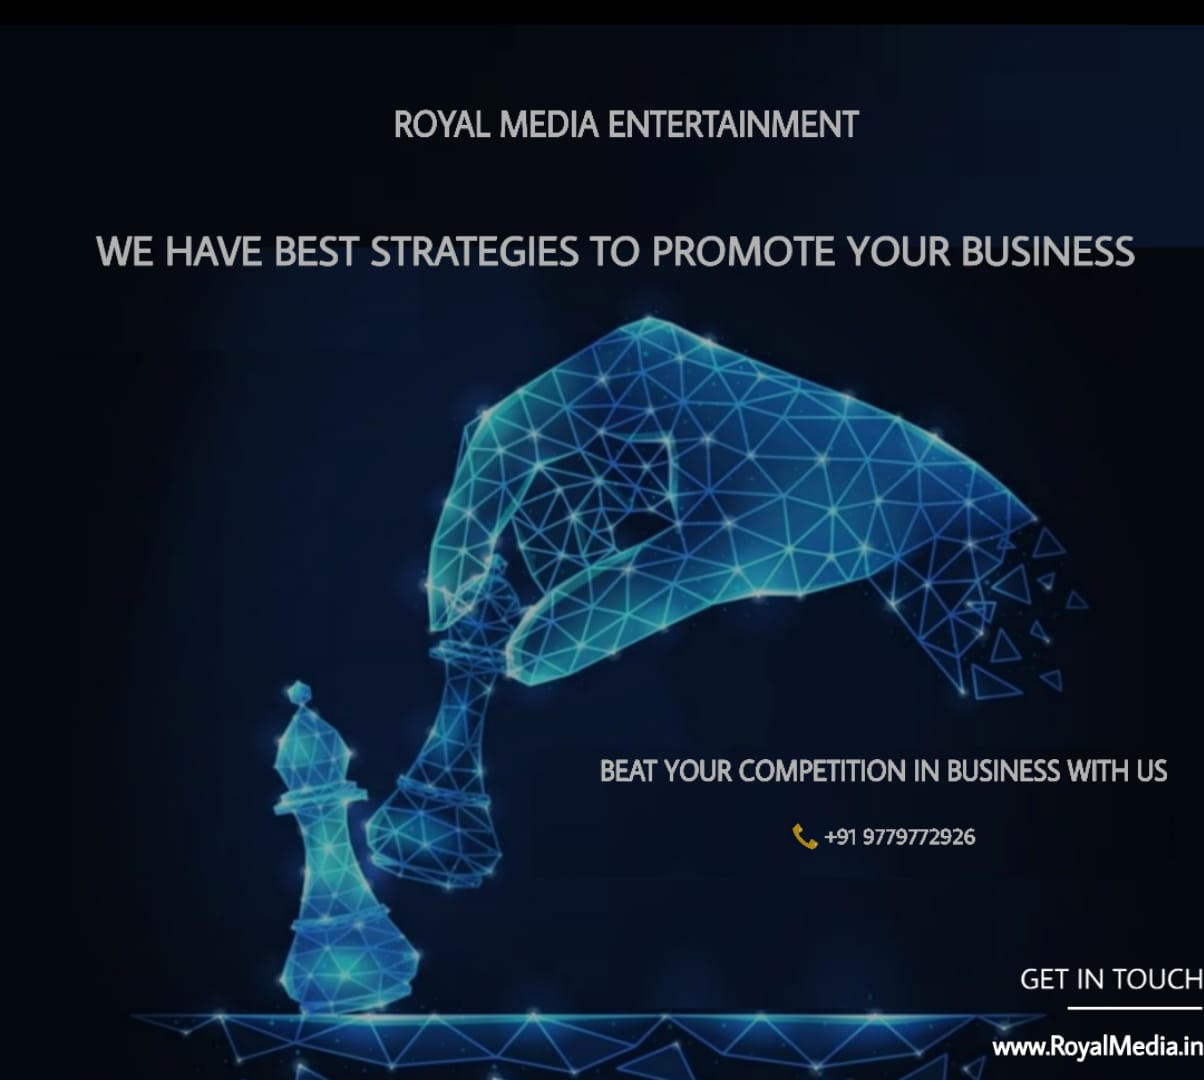 BEAT YOUR COMPETITION IN BUSINESS WITH US!